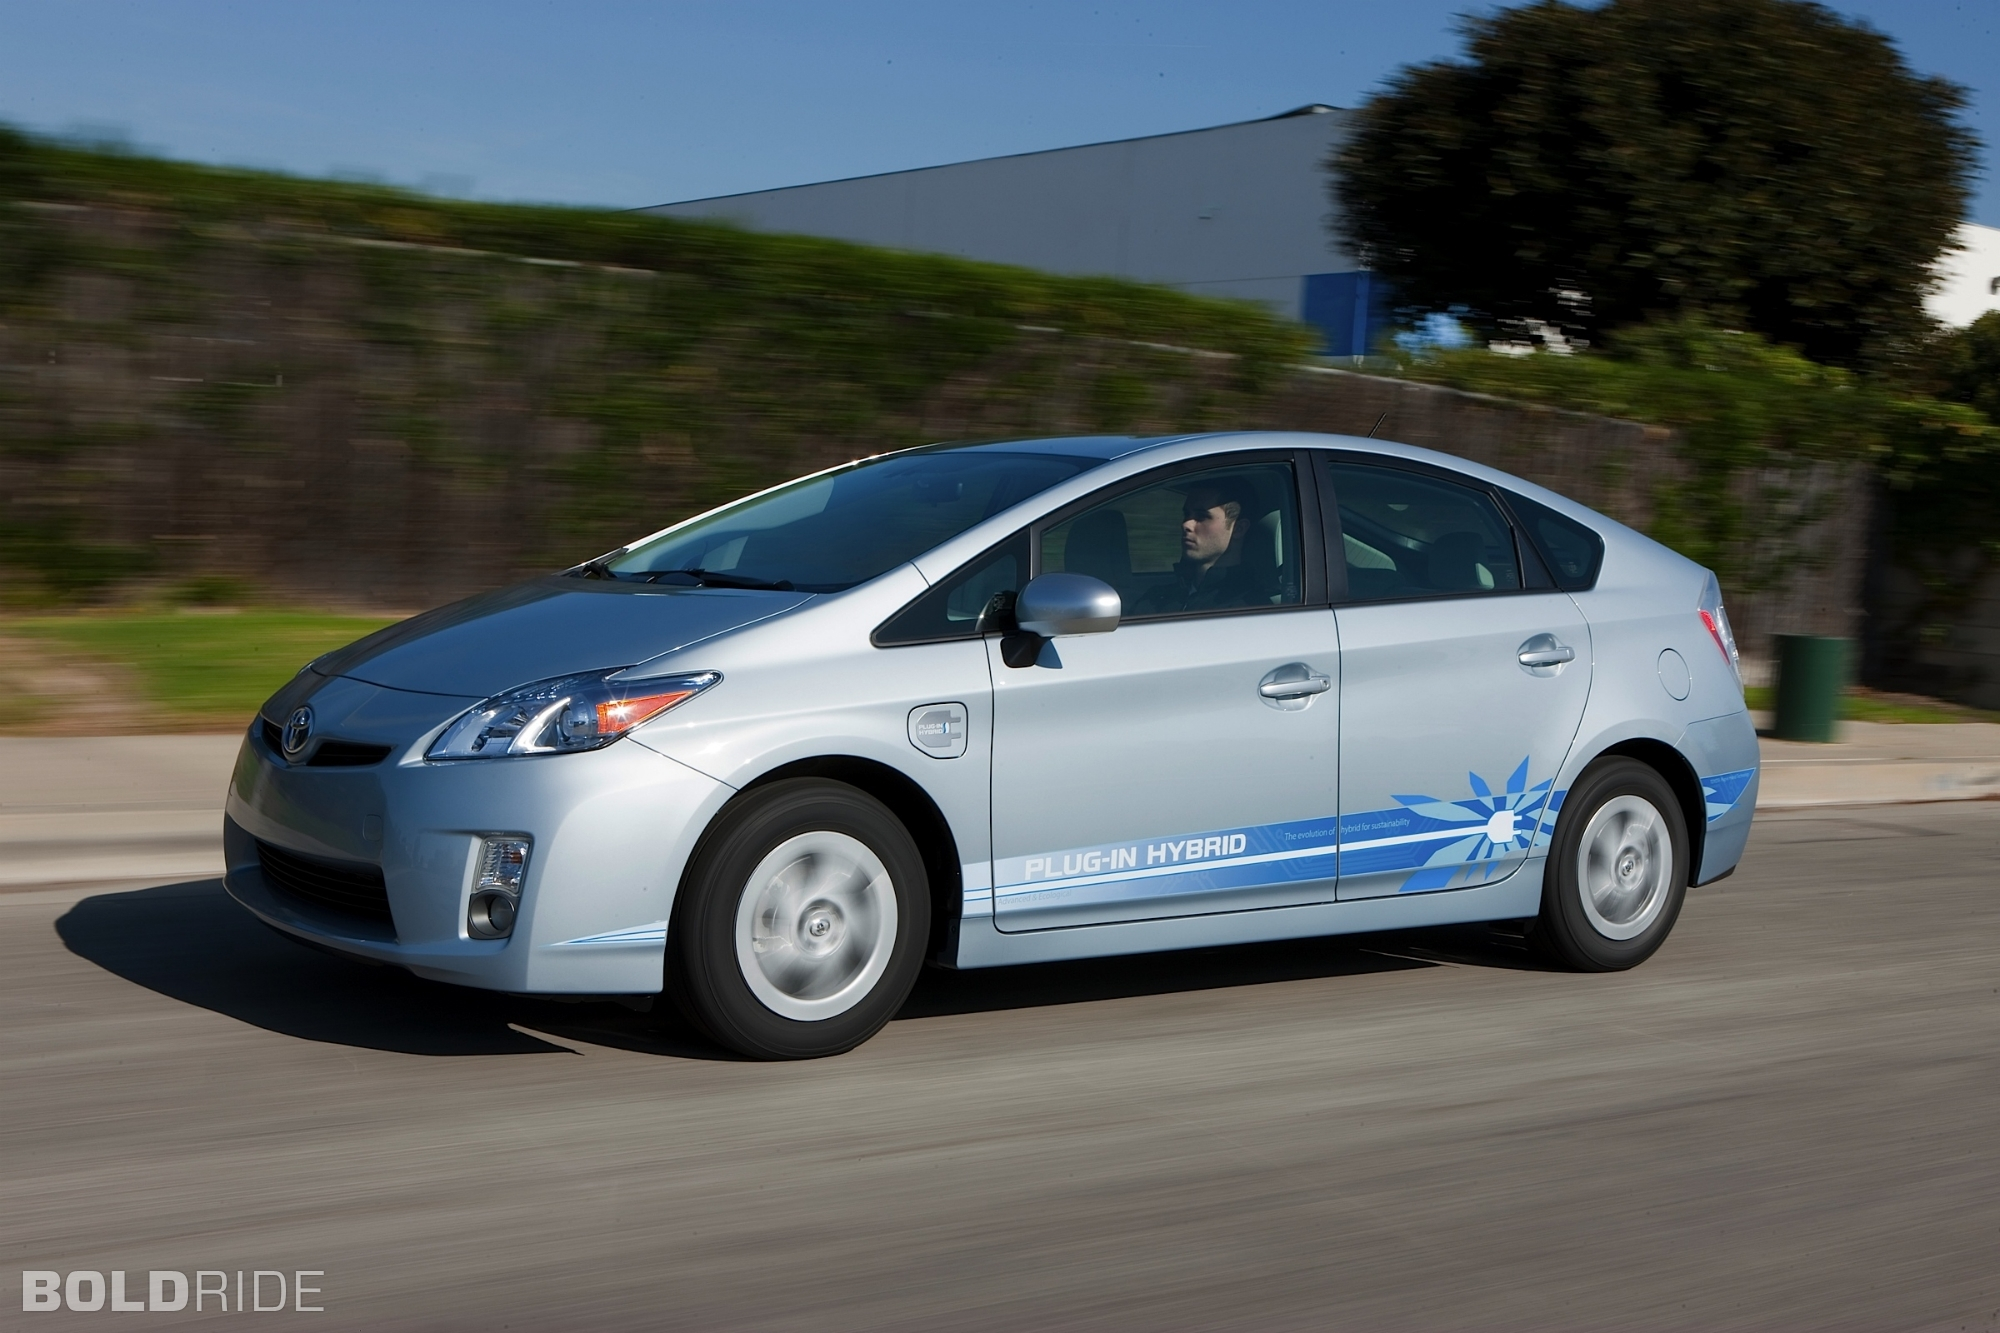 2019 Toyota Prius Plug in Hybrid Concept photo - 4